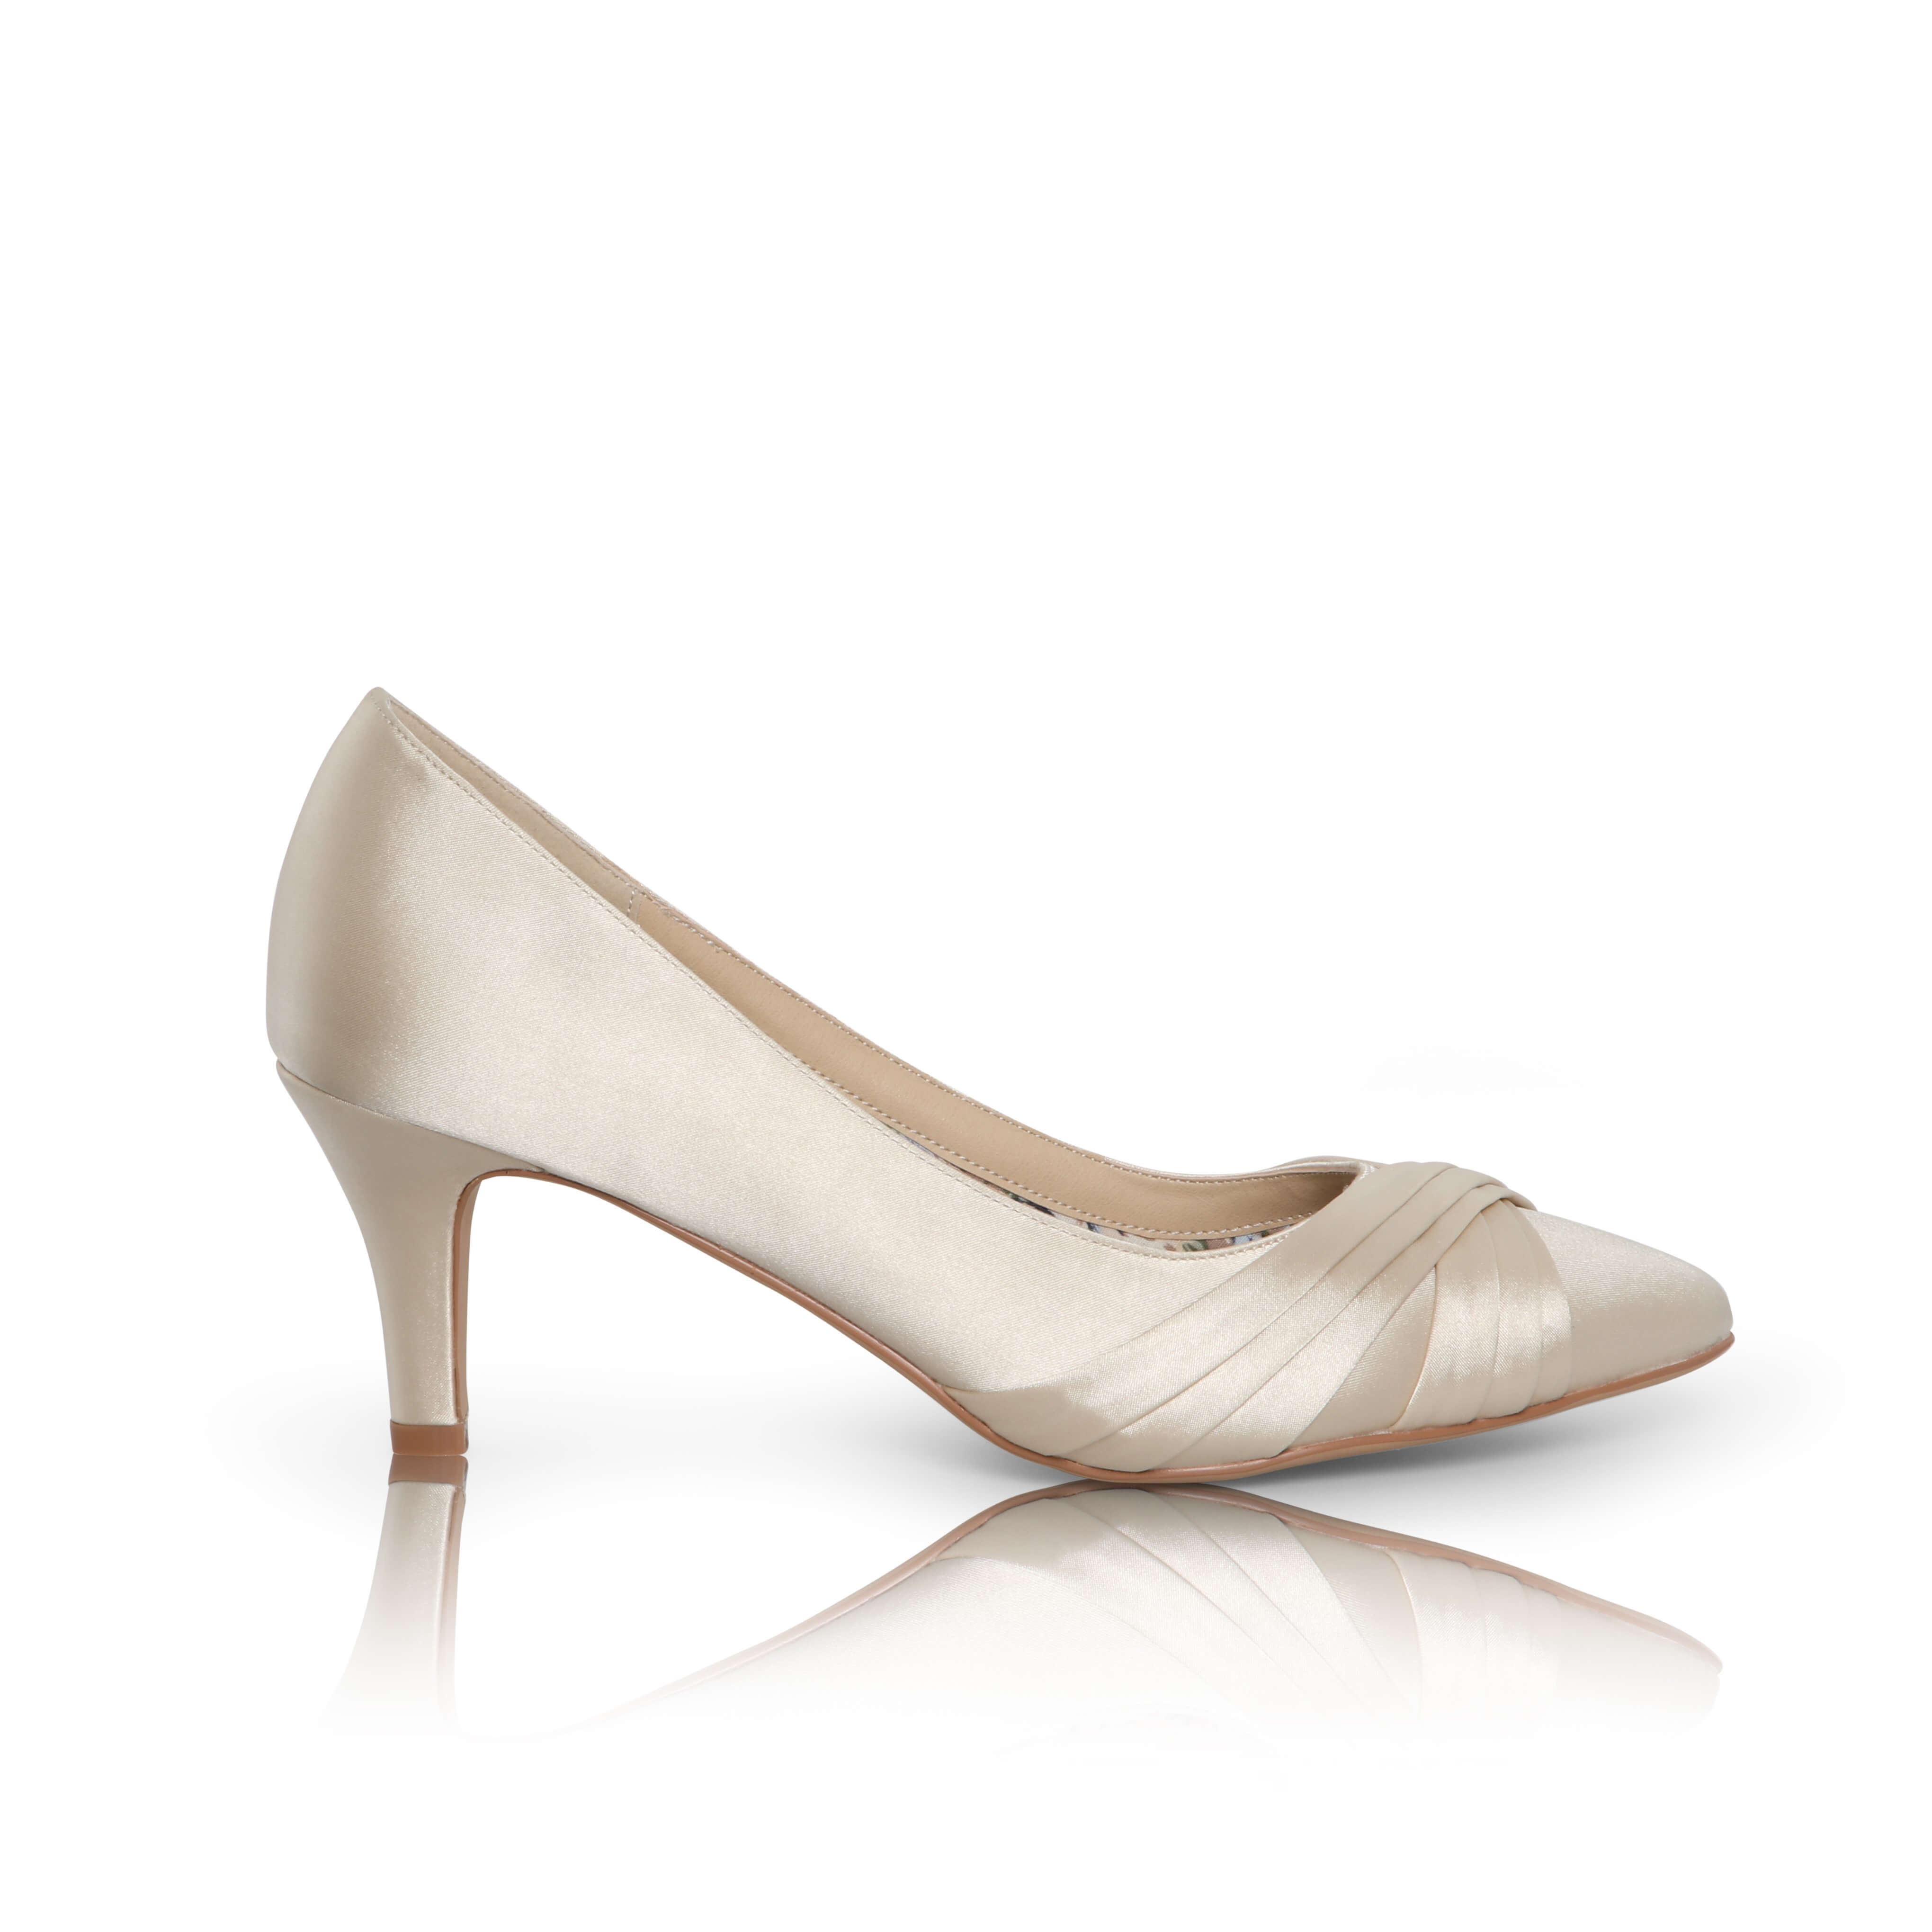 Sally - satin occasion shoes - The